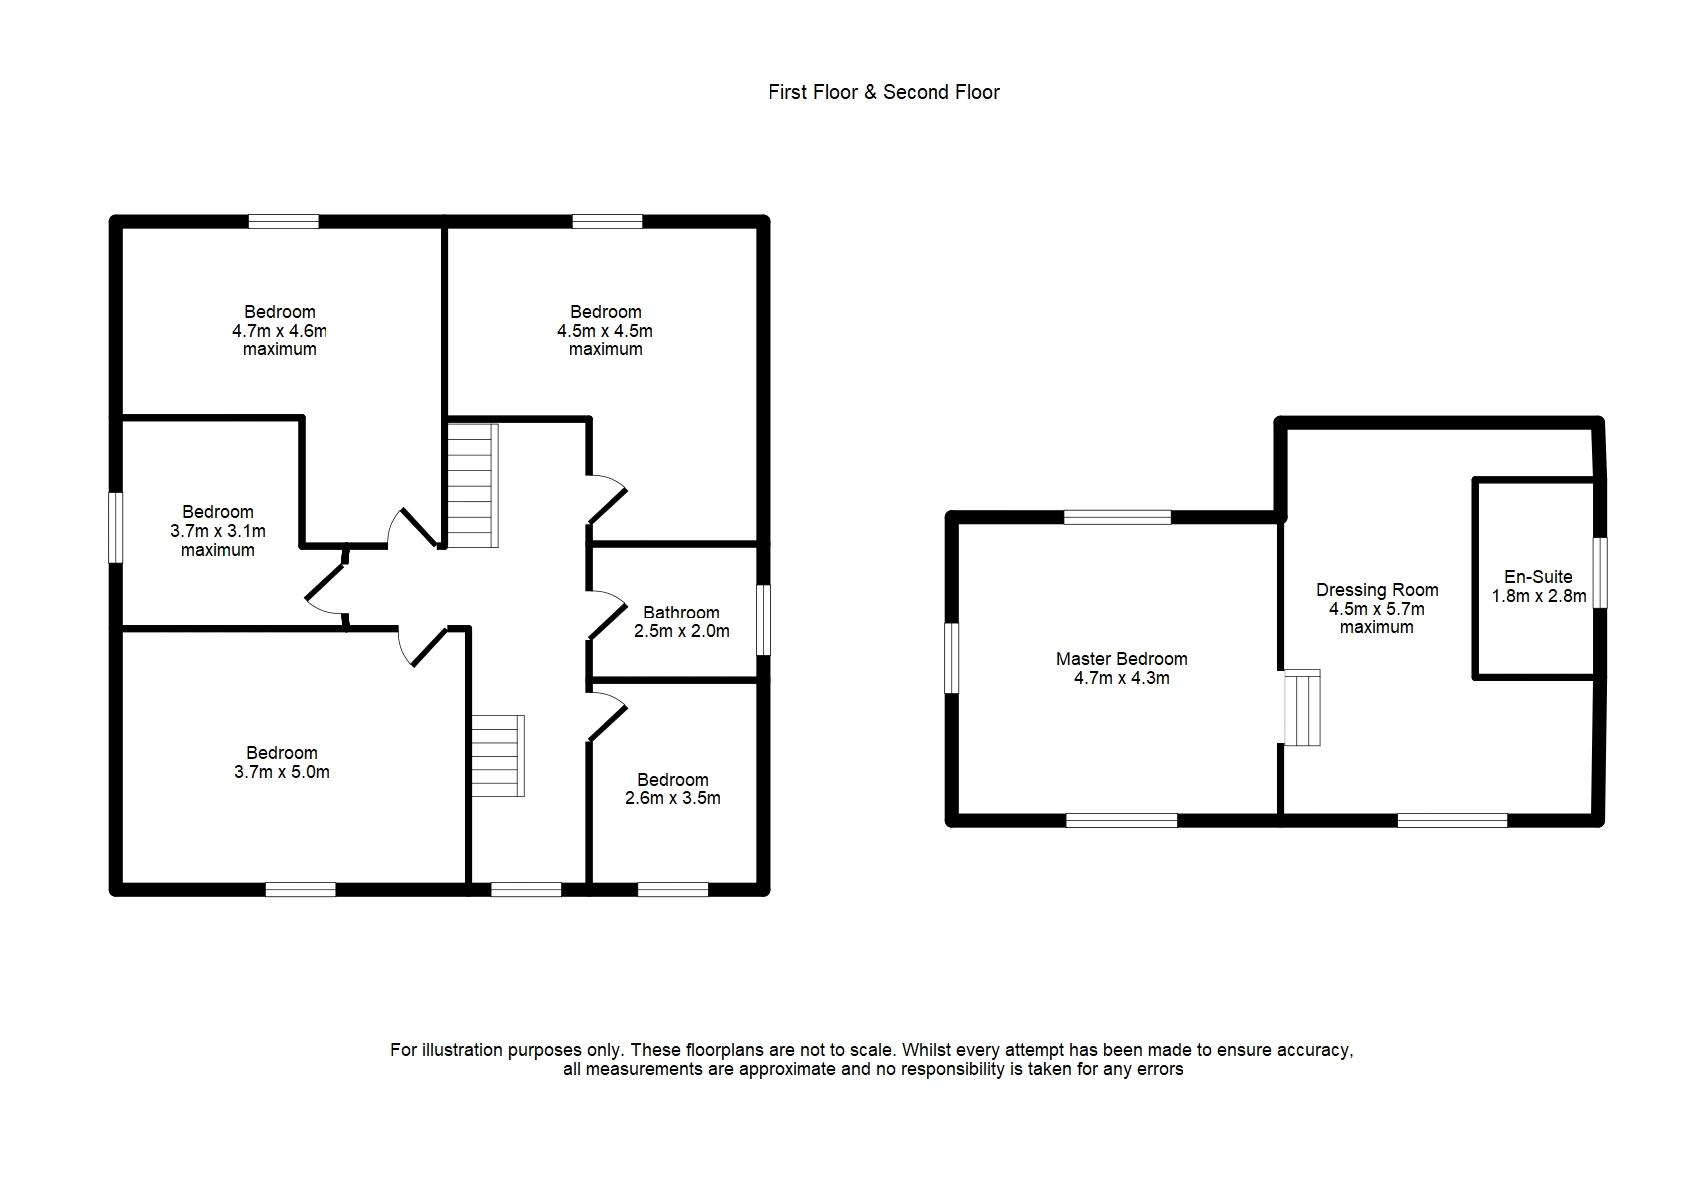 First & Second Floor Floorplan